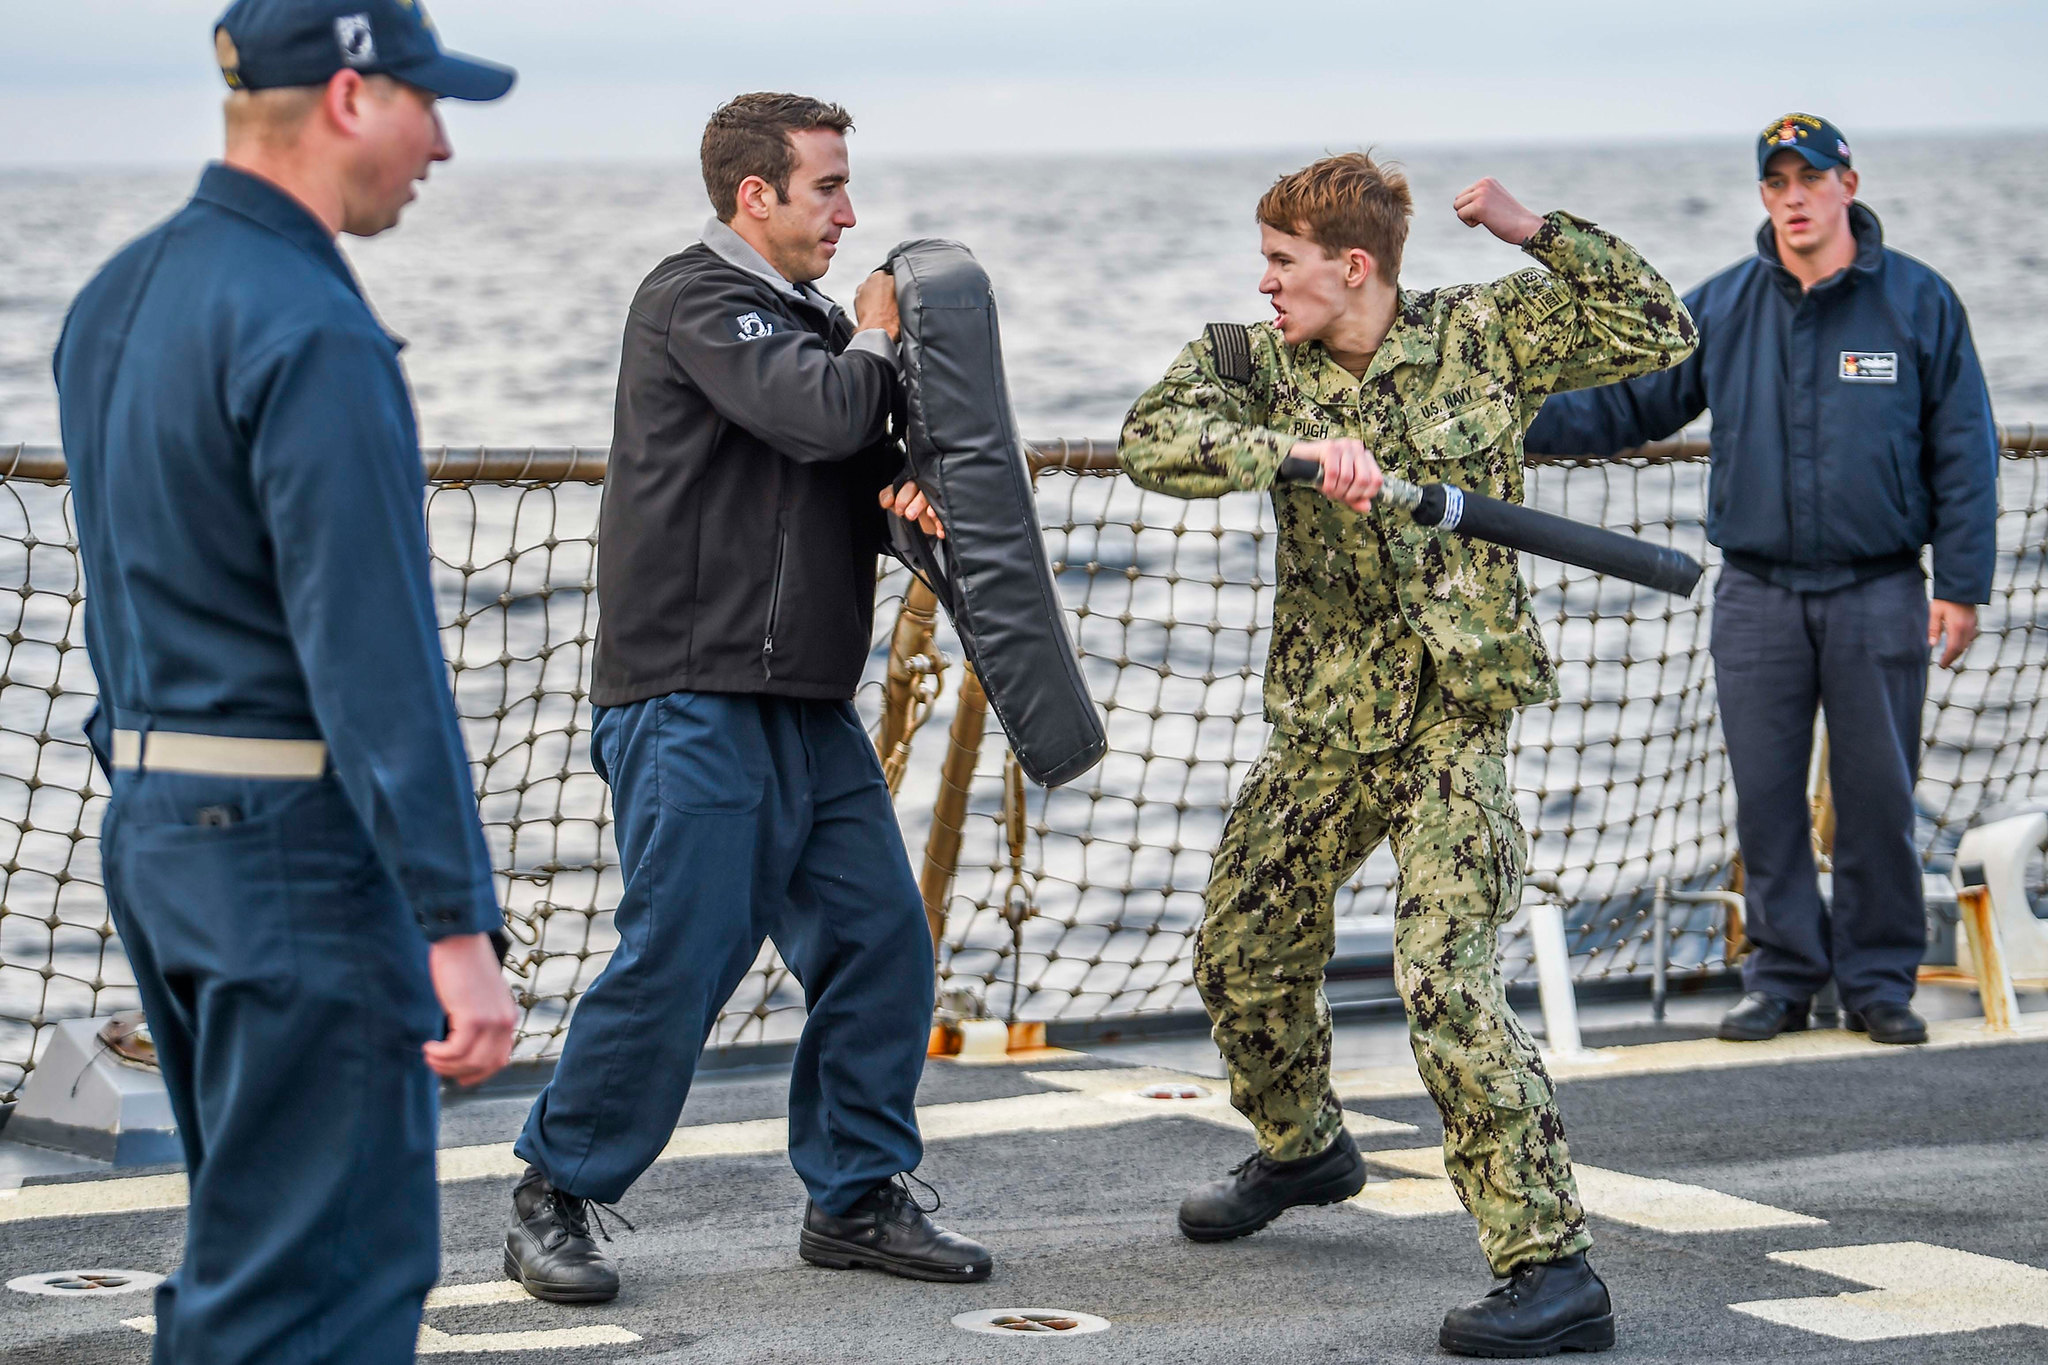 Electronics Technician 3rd Class Philip Pugh participates in a non-lethal weapons and oleoresin capsicum spray training course on the flight deck of the Arleigh Burke-class guided-missile destroyer USS Milius (DDG 69) on Dec. 30, 2019, in the Sea of Japan. (Mass Communication Specialist 2nd Class Taylor DiMartino/Navy)